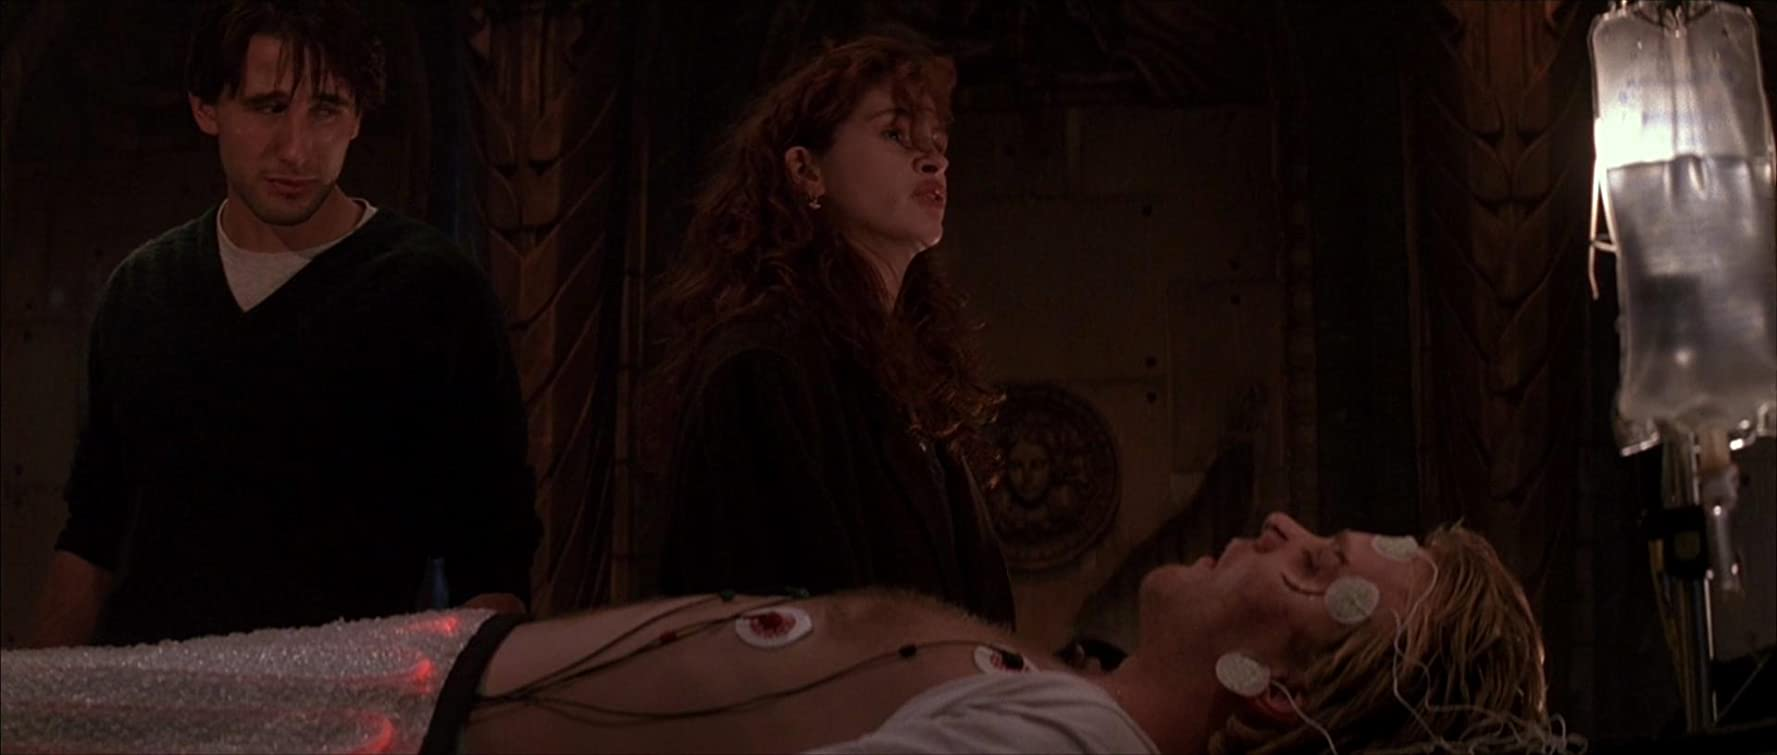 Julia Roberts, William Baldwin, and Kiefer Sutherland in Flatliners (1990)